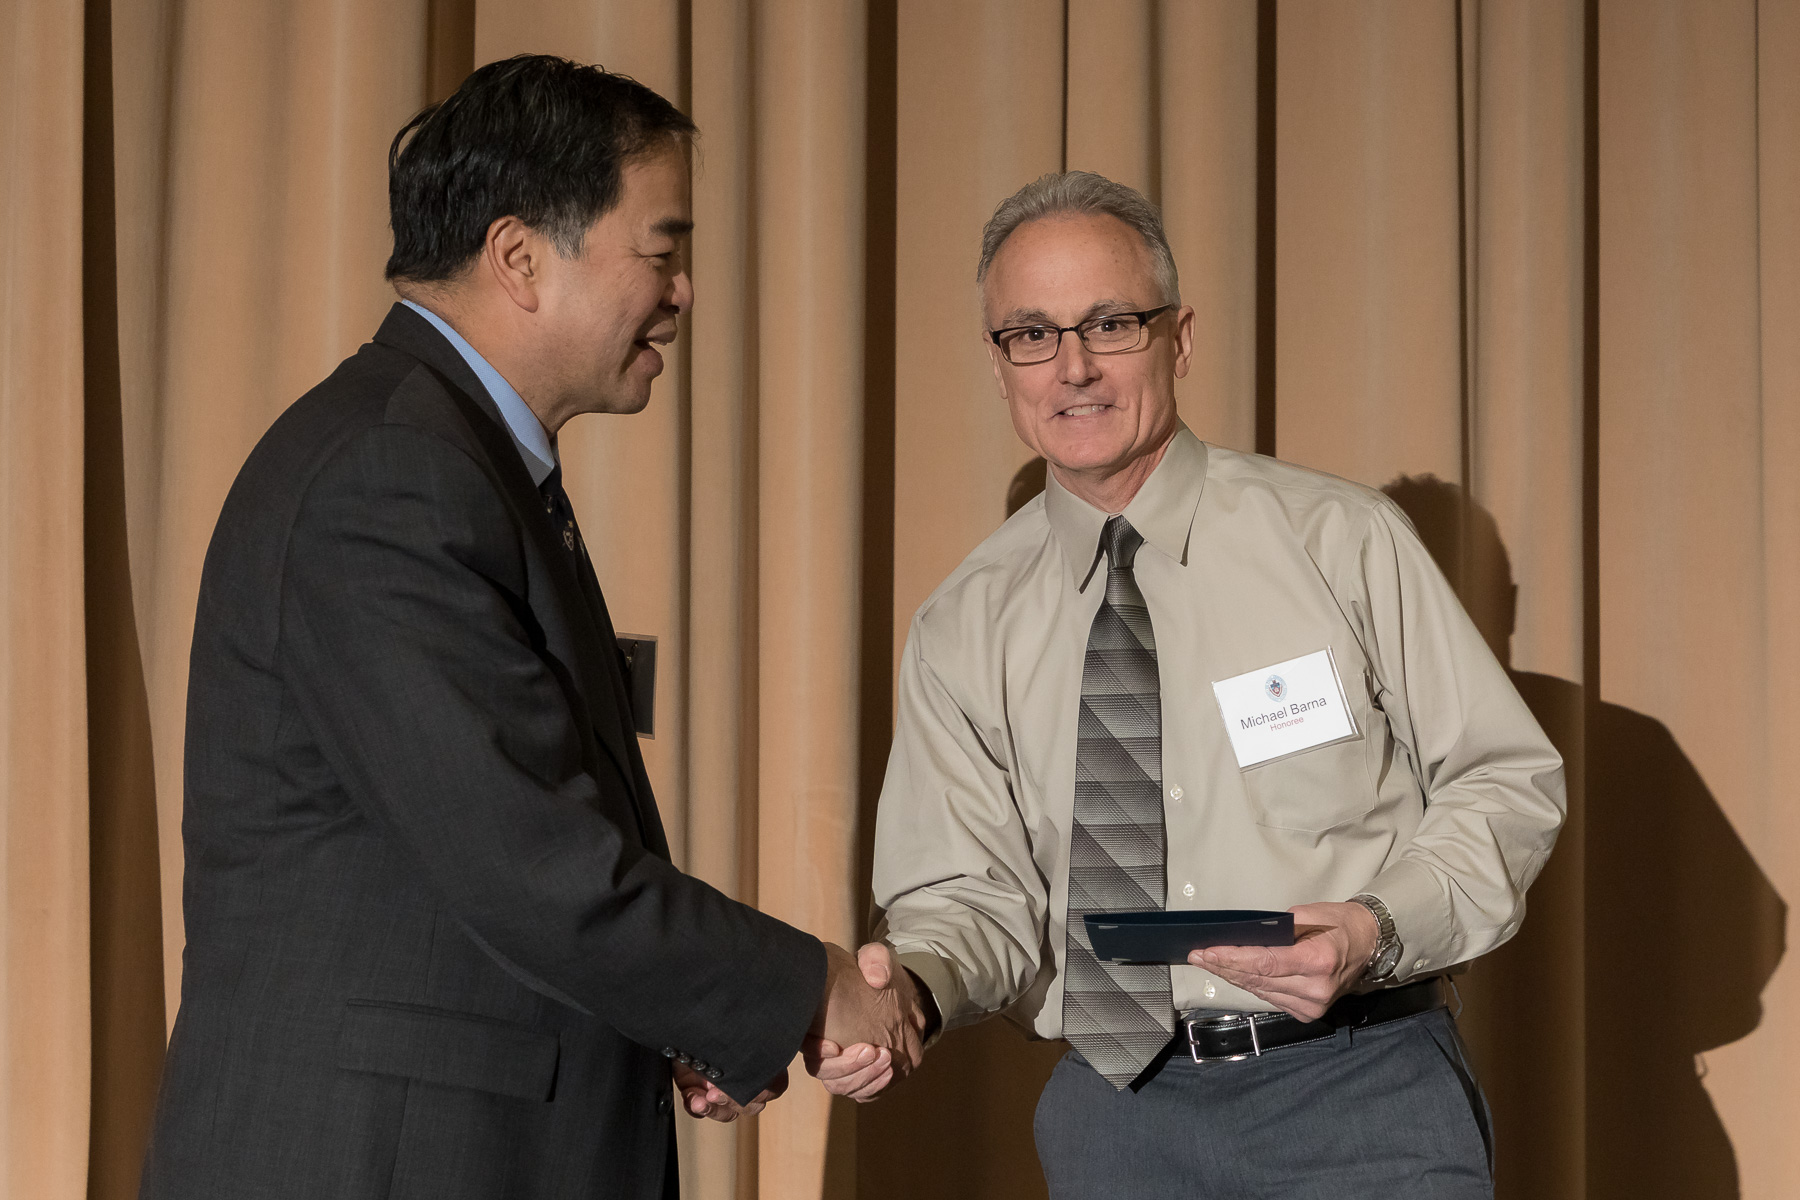 Michael Barna, right, with A. Gabriel Esteban, Ph.D., president, as faculty and staff members are inducted into DePaul University's 25 Year Club, Tuesday, Nov. 13, 2018, at the Lincoln Park Student Center. Employees celebrating their 25th work anniversary were honored at the luncheon with their colleagues and will have their names added to plaques located on the Loop and Lincoln Park Campuses. (DePaul University/Jeff Carrion)